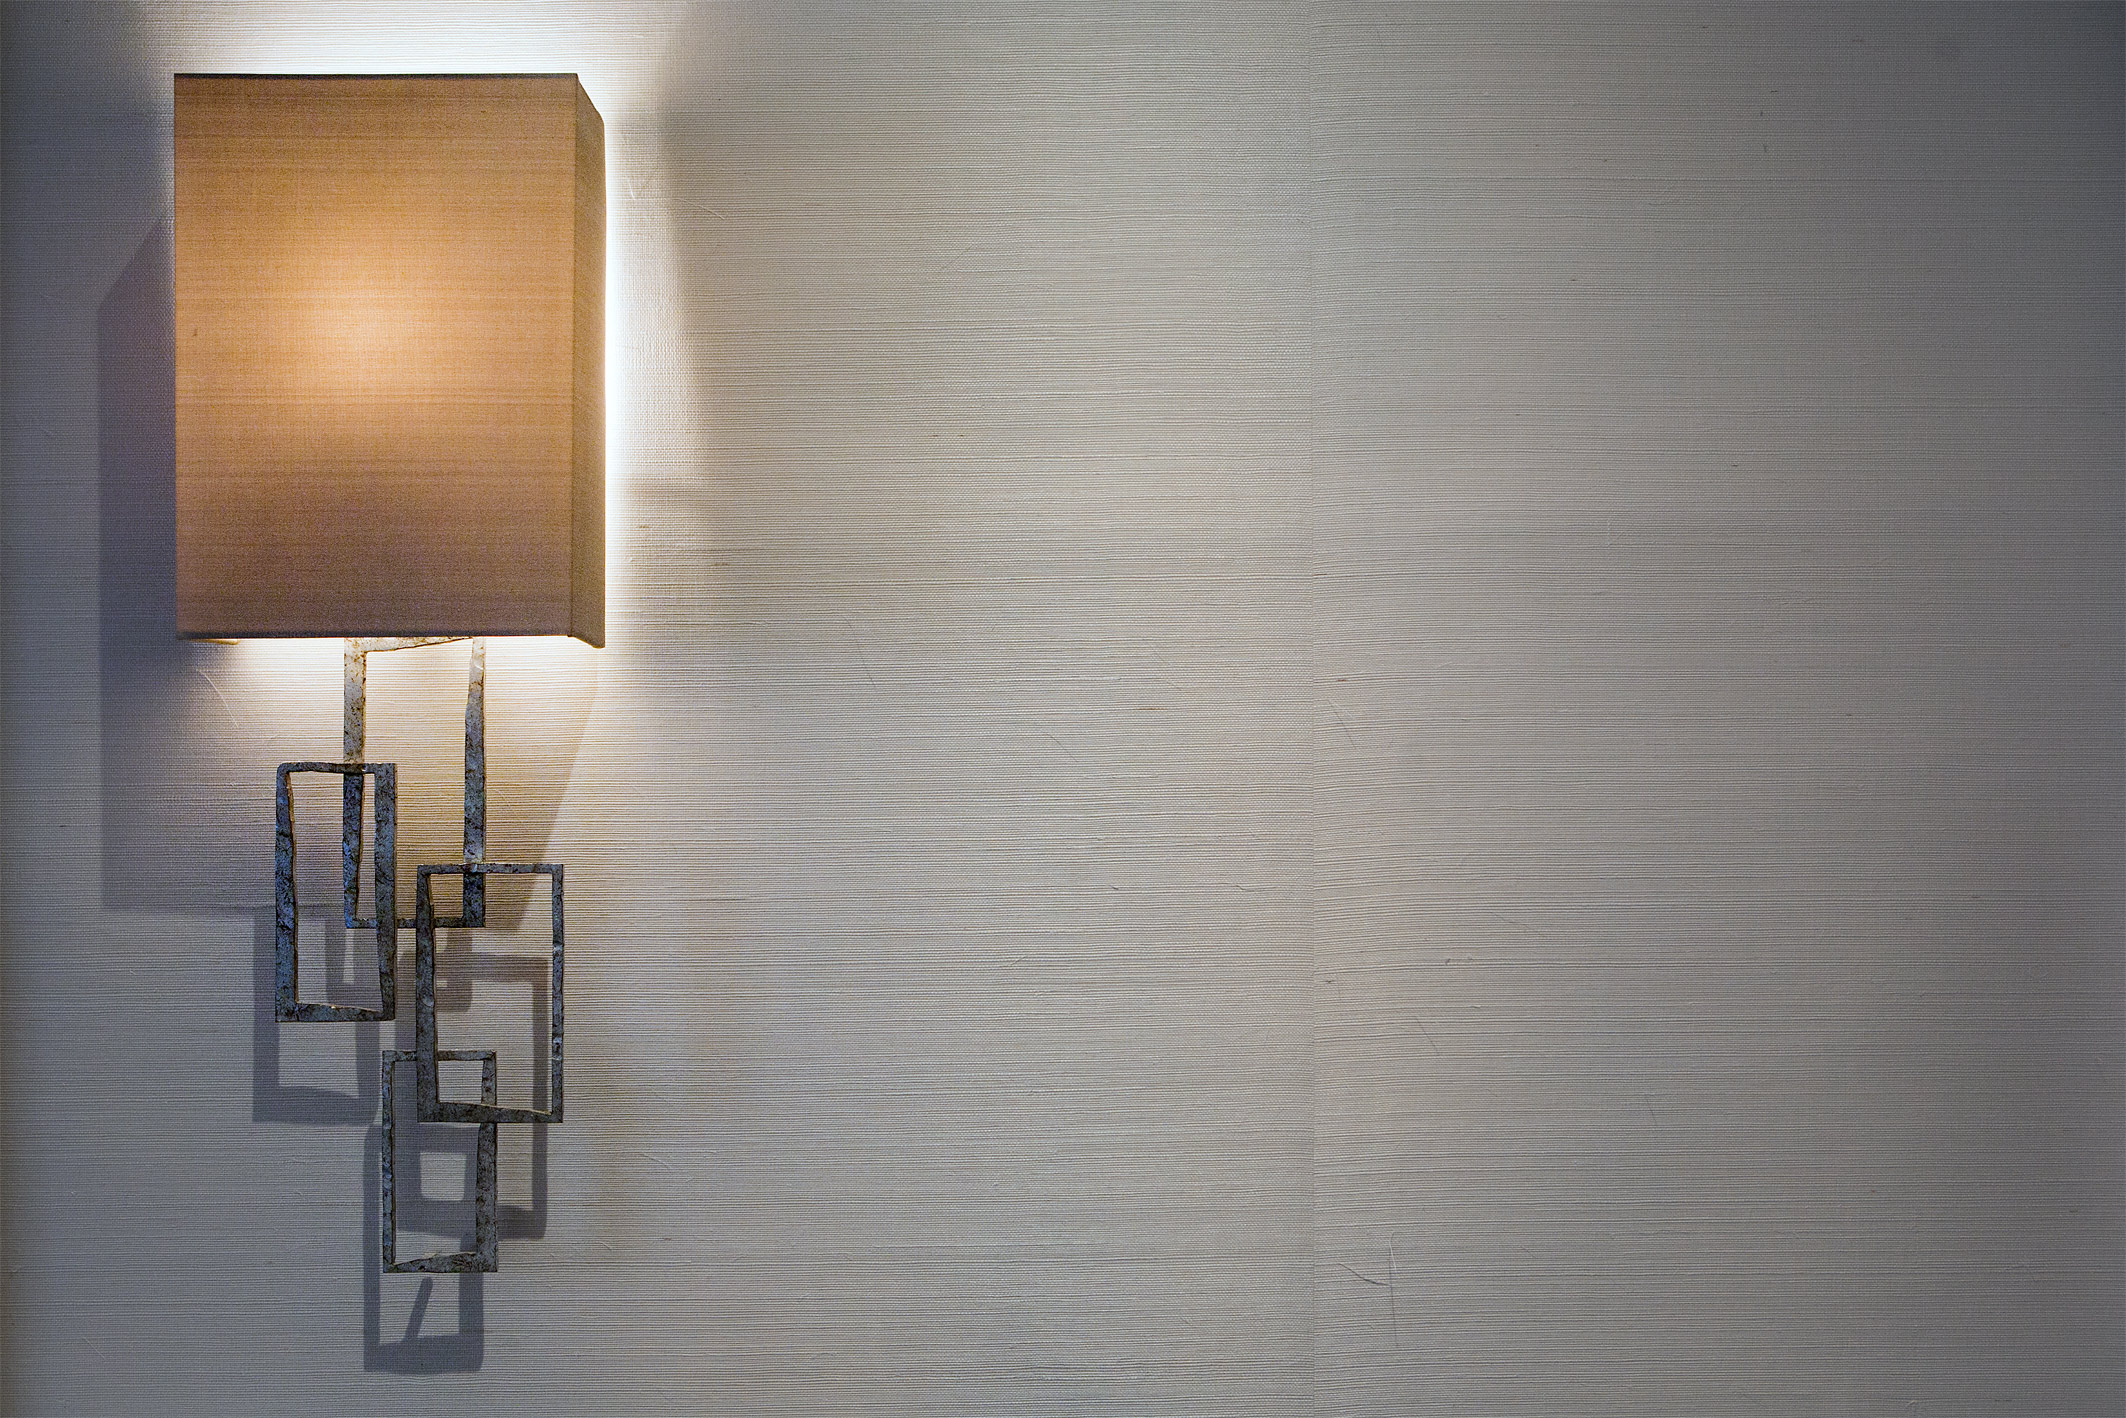 A sculptural wall light is silhouetted against a fine grasscloth wall covering